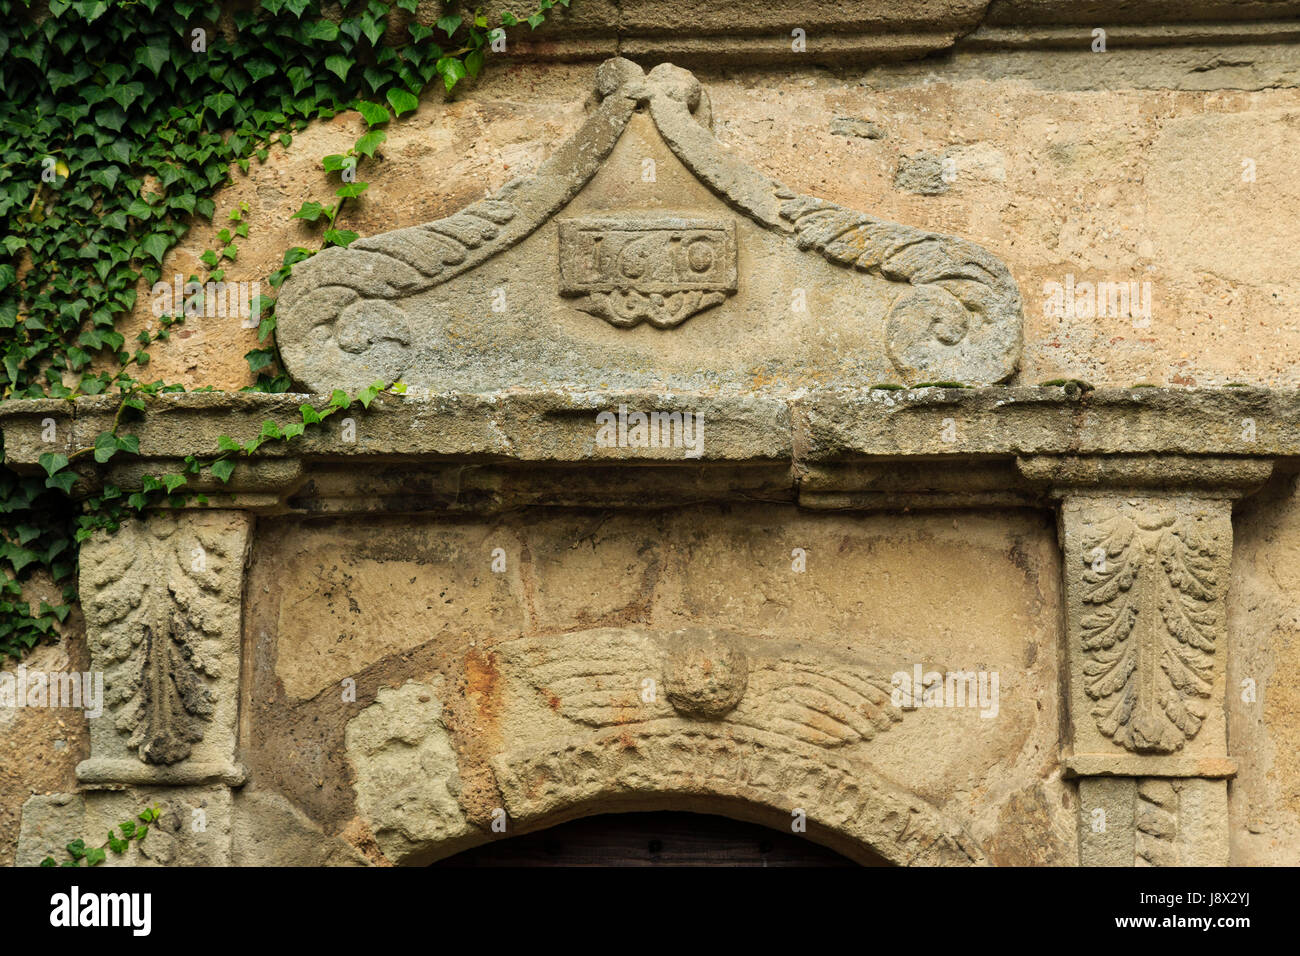 France, Saone et Loire, Couches, door of the Templier House - Stock Image